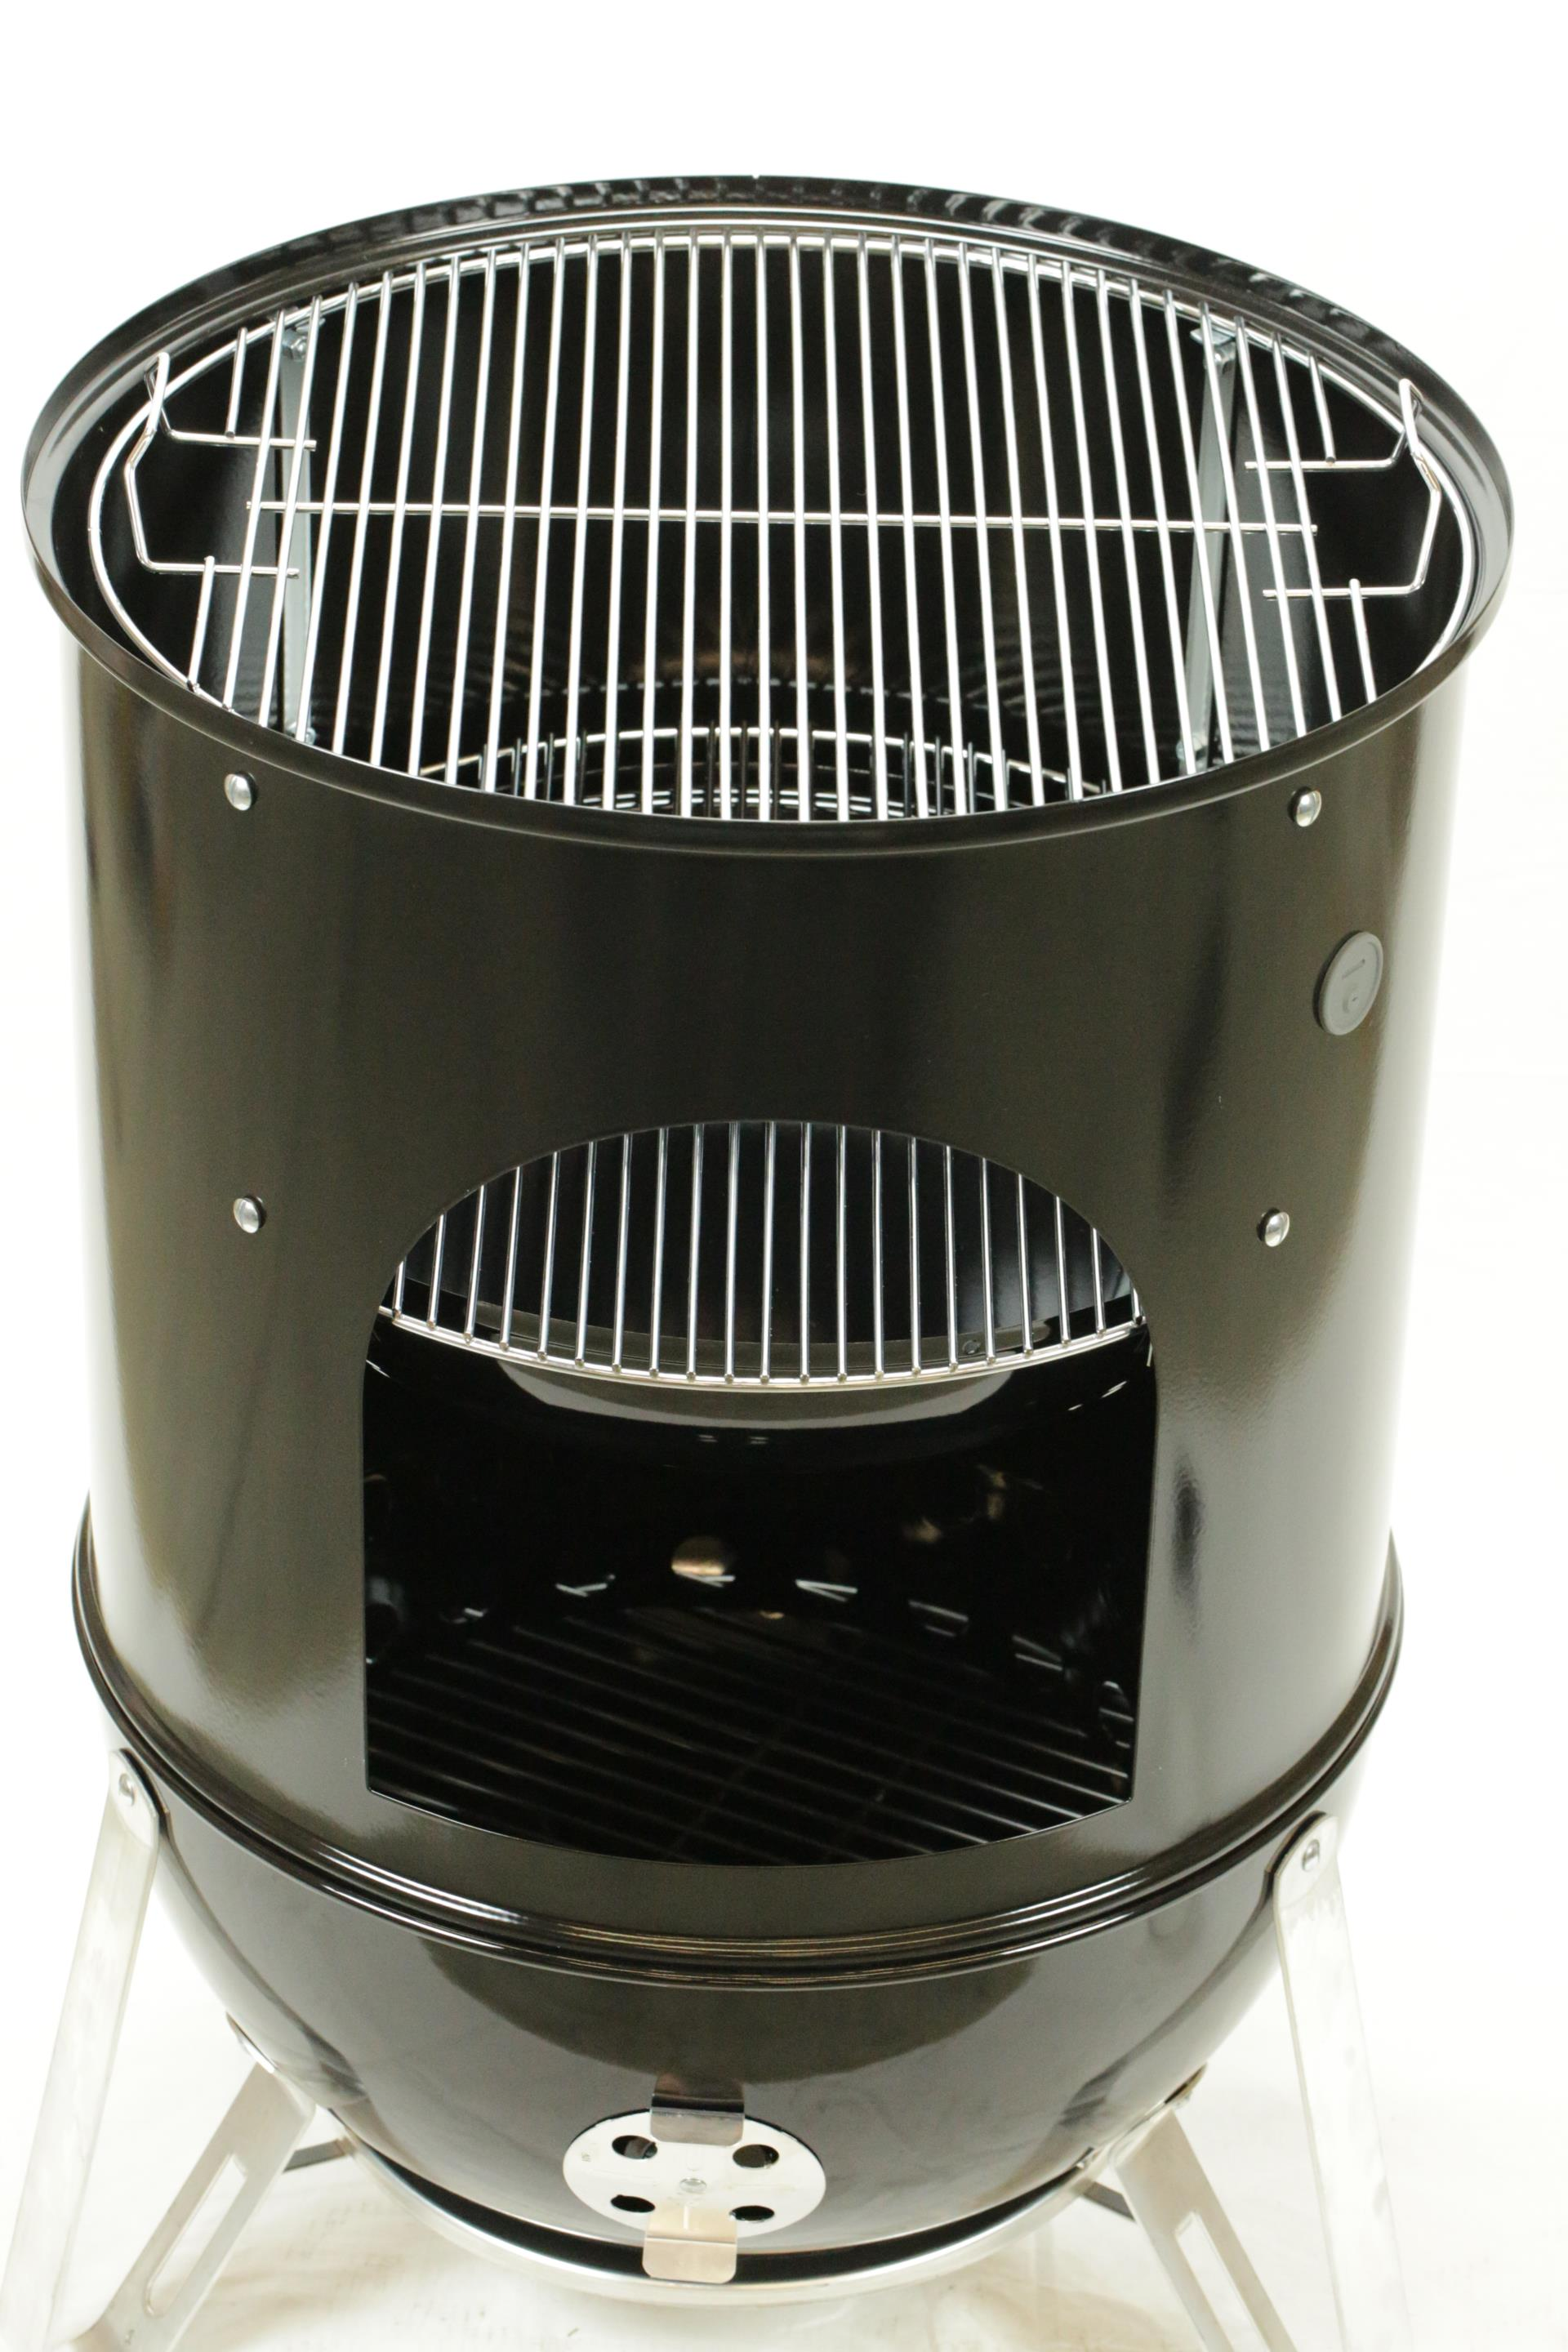 weber smokey mountain cooker 47 cm black raima grill. Black Bedroom Furniture Sets. Home Design Ideas